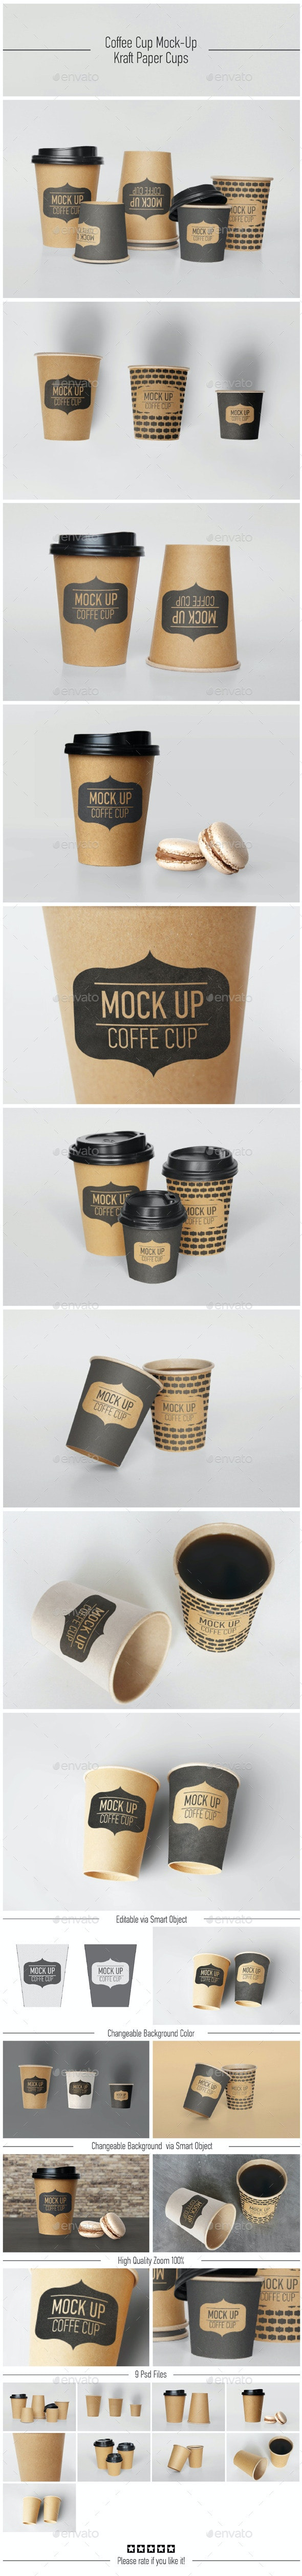 Coffee Cup Mock-Up - Food and Drink Packaging